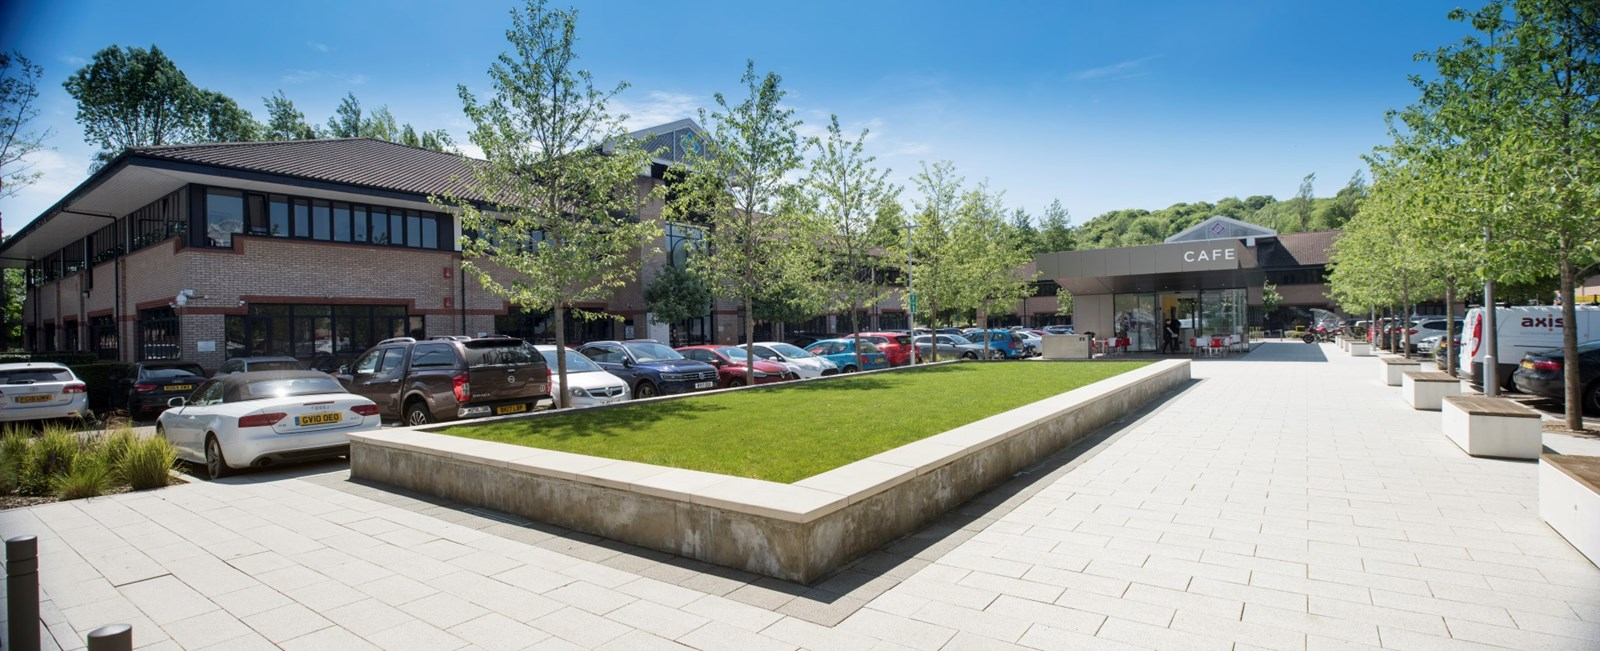 Kingsmead Business Park